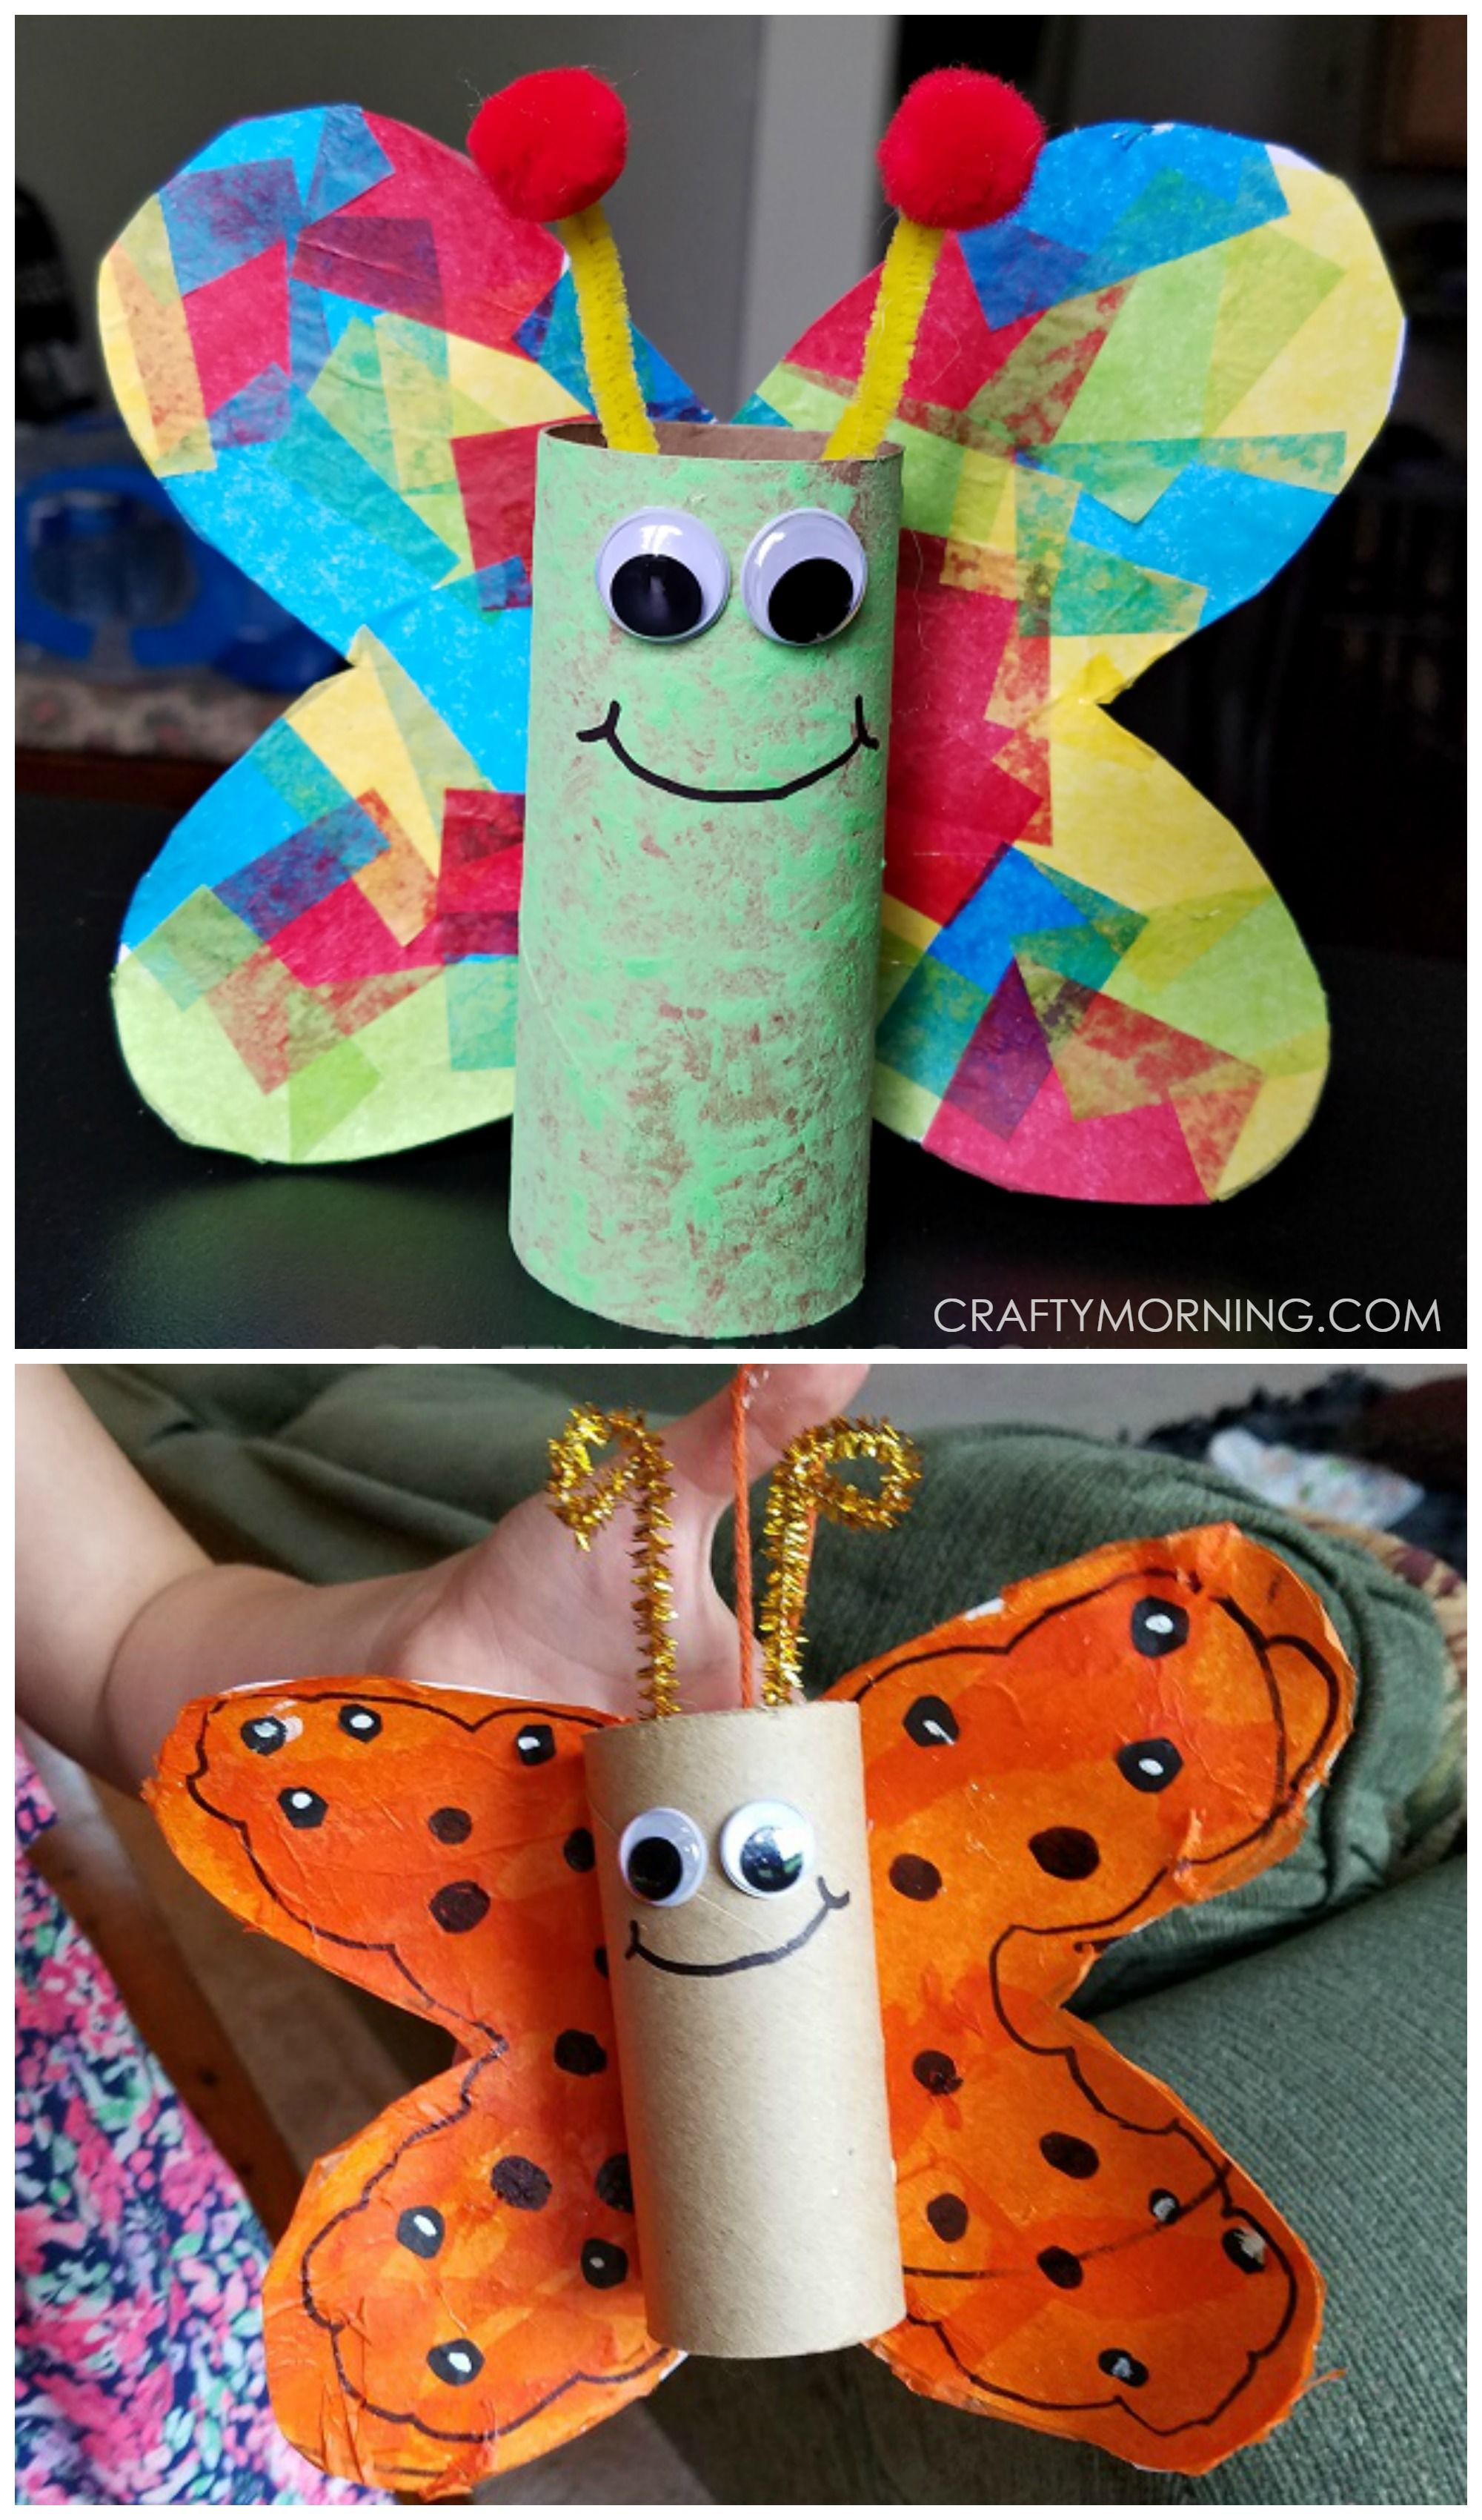 Cardboard tube butterfly craft for kids to make perfect for cardboard tube butterfly craft for kids to make perfect for spring or summer use toilet paper rolls or paper towel rolls crafting for ideas jeuxipadfo Choice Image